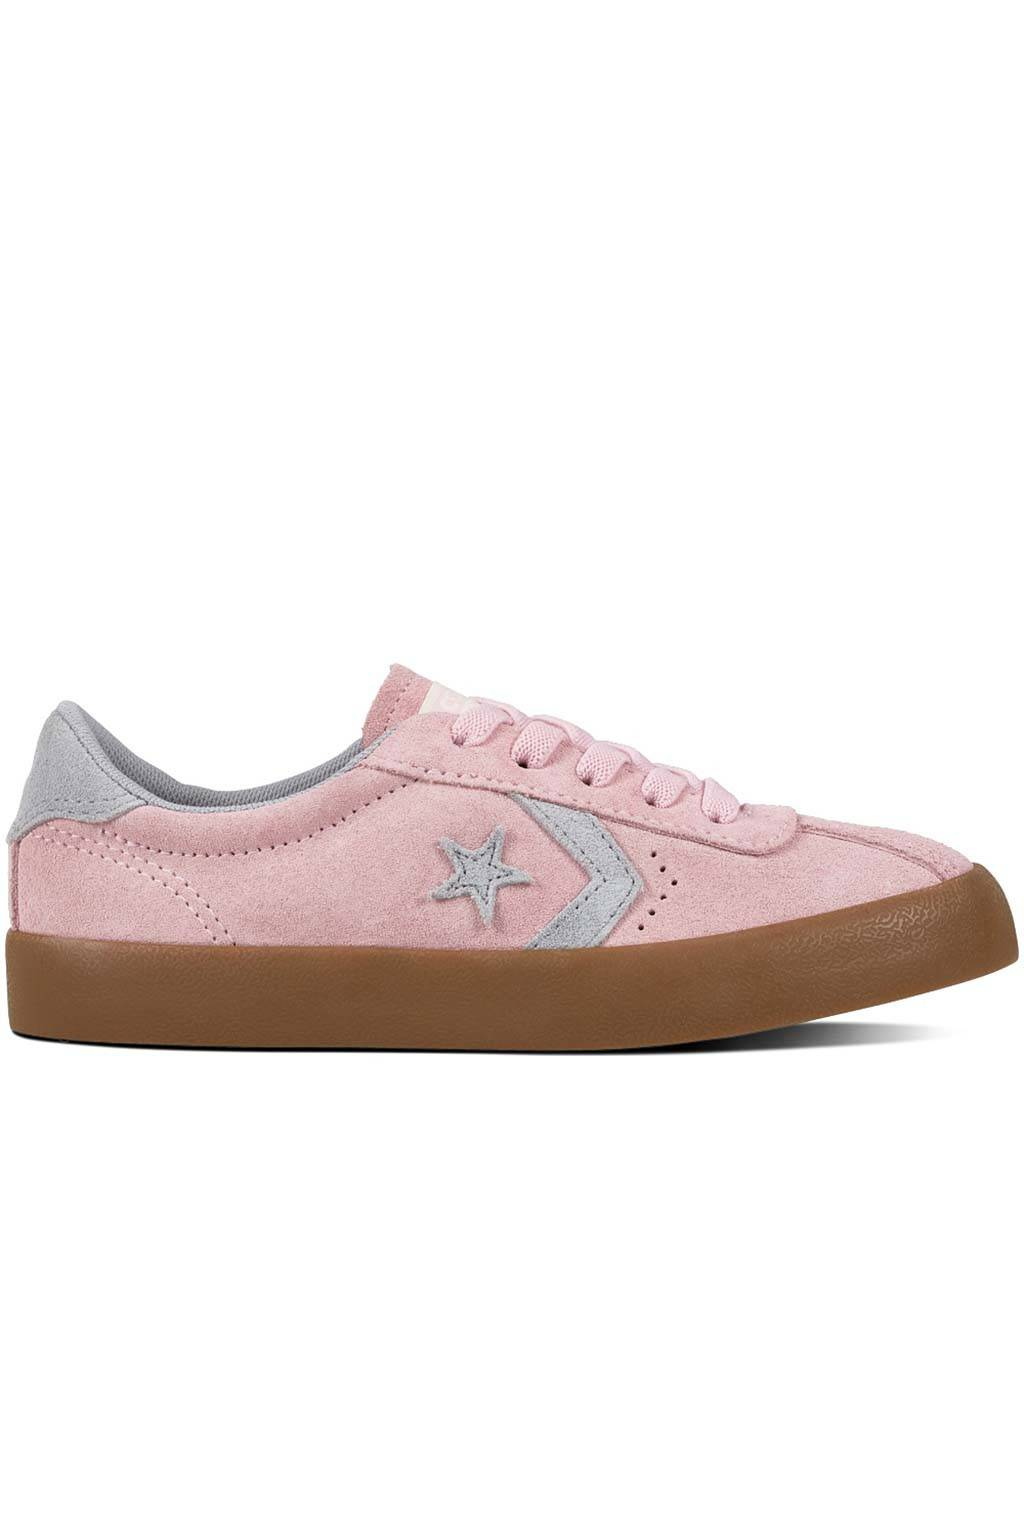 Converse breakpoint ox 660015C